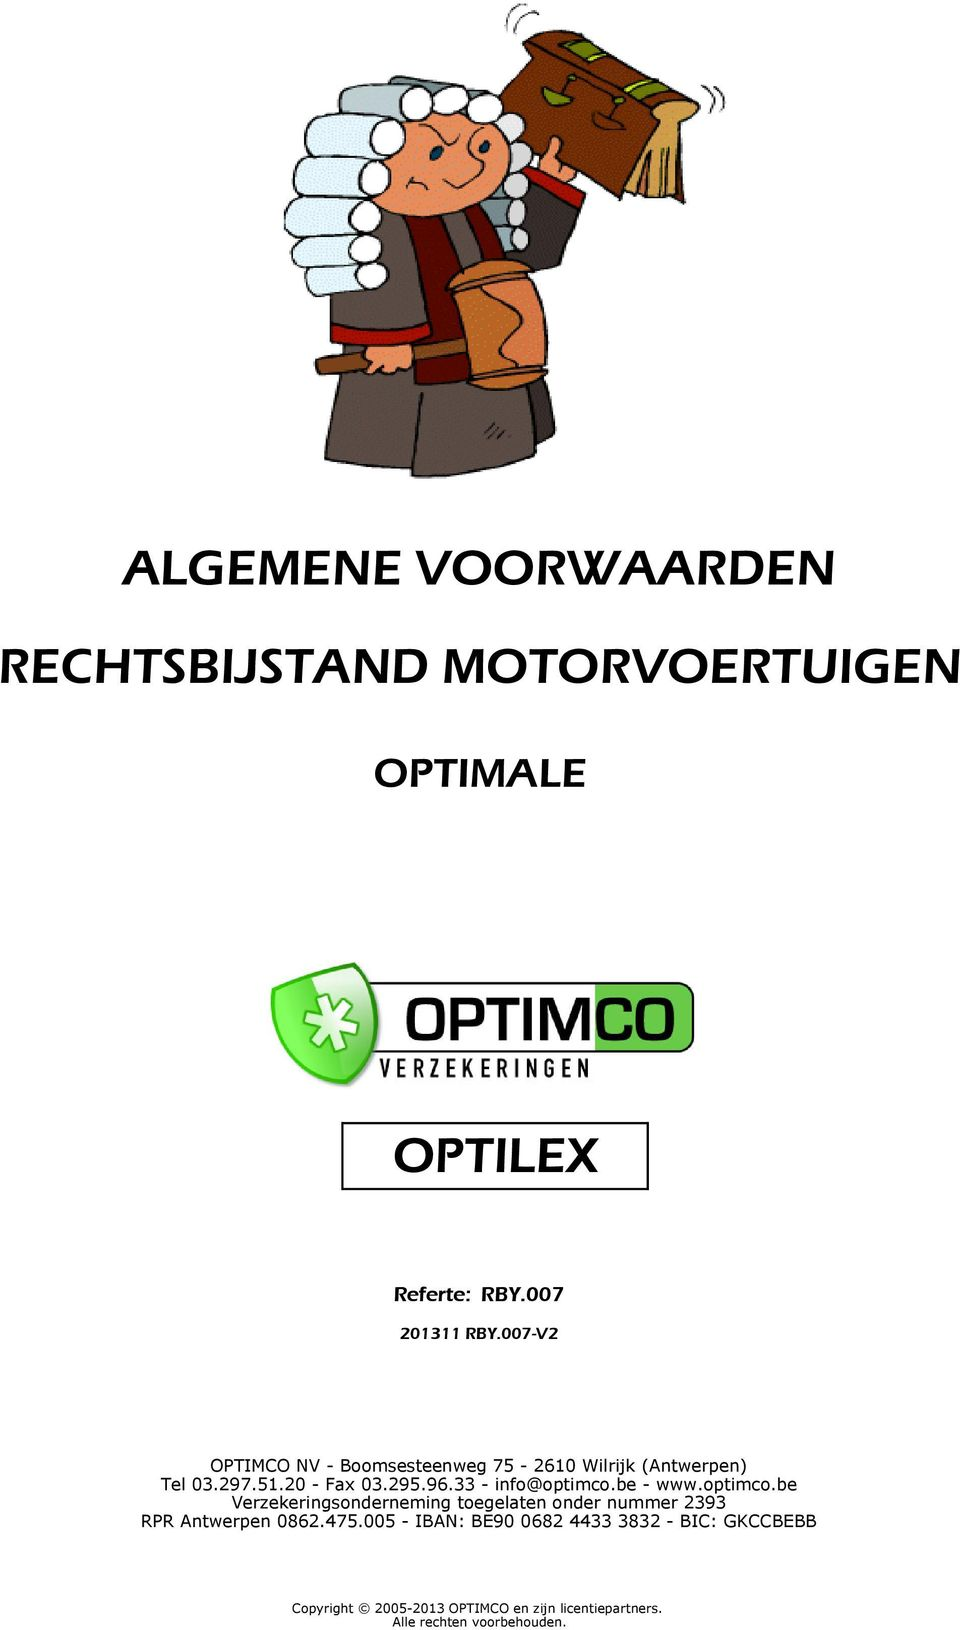 33 - info@optimco.be - www.optimco.be Verzekeringsonderneming toegelaten onder nummer 2393 RPR Antwerpen 0862.